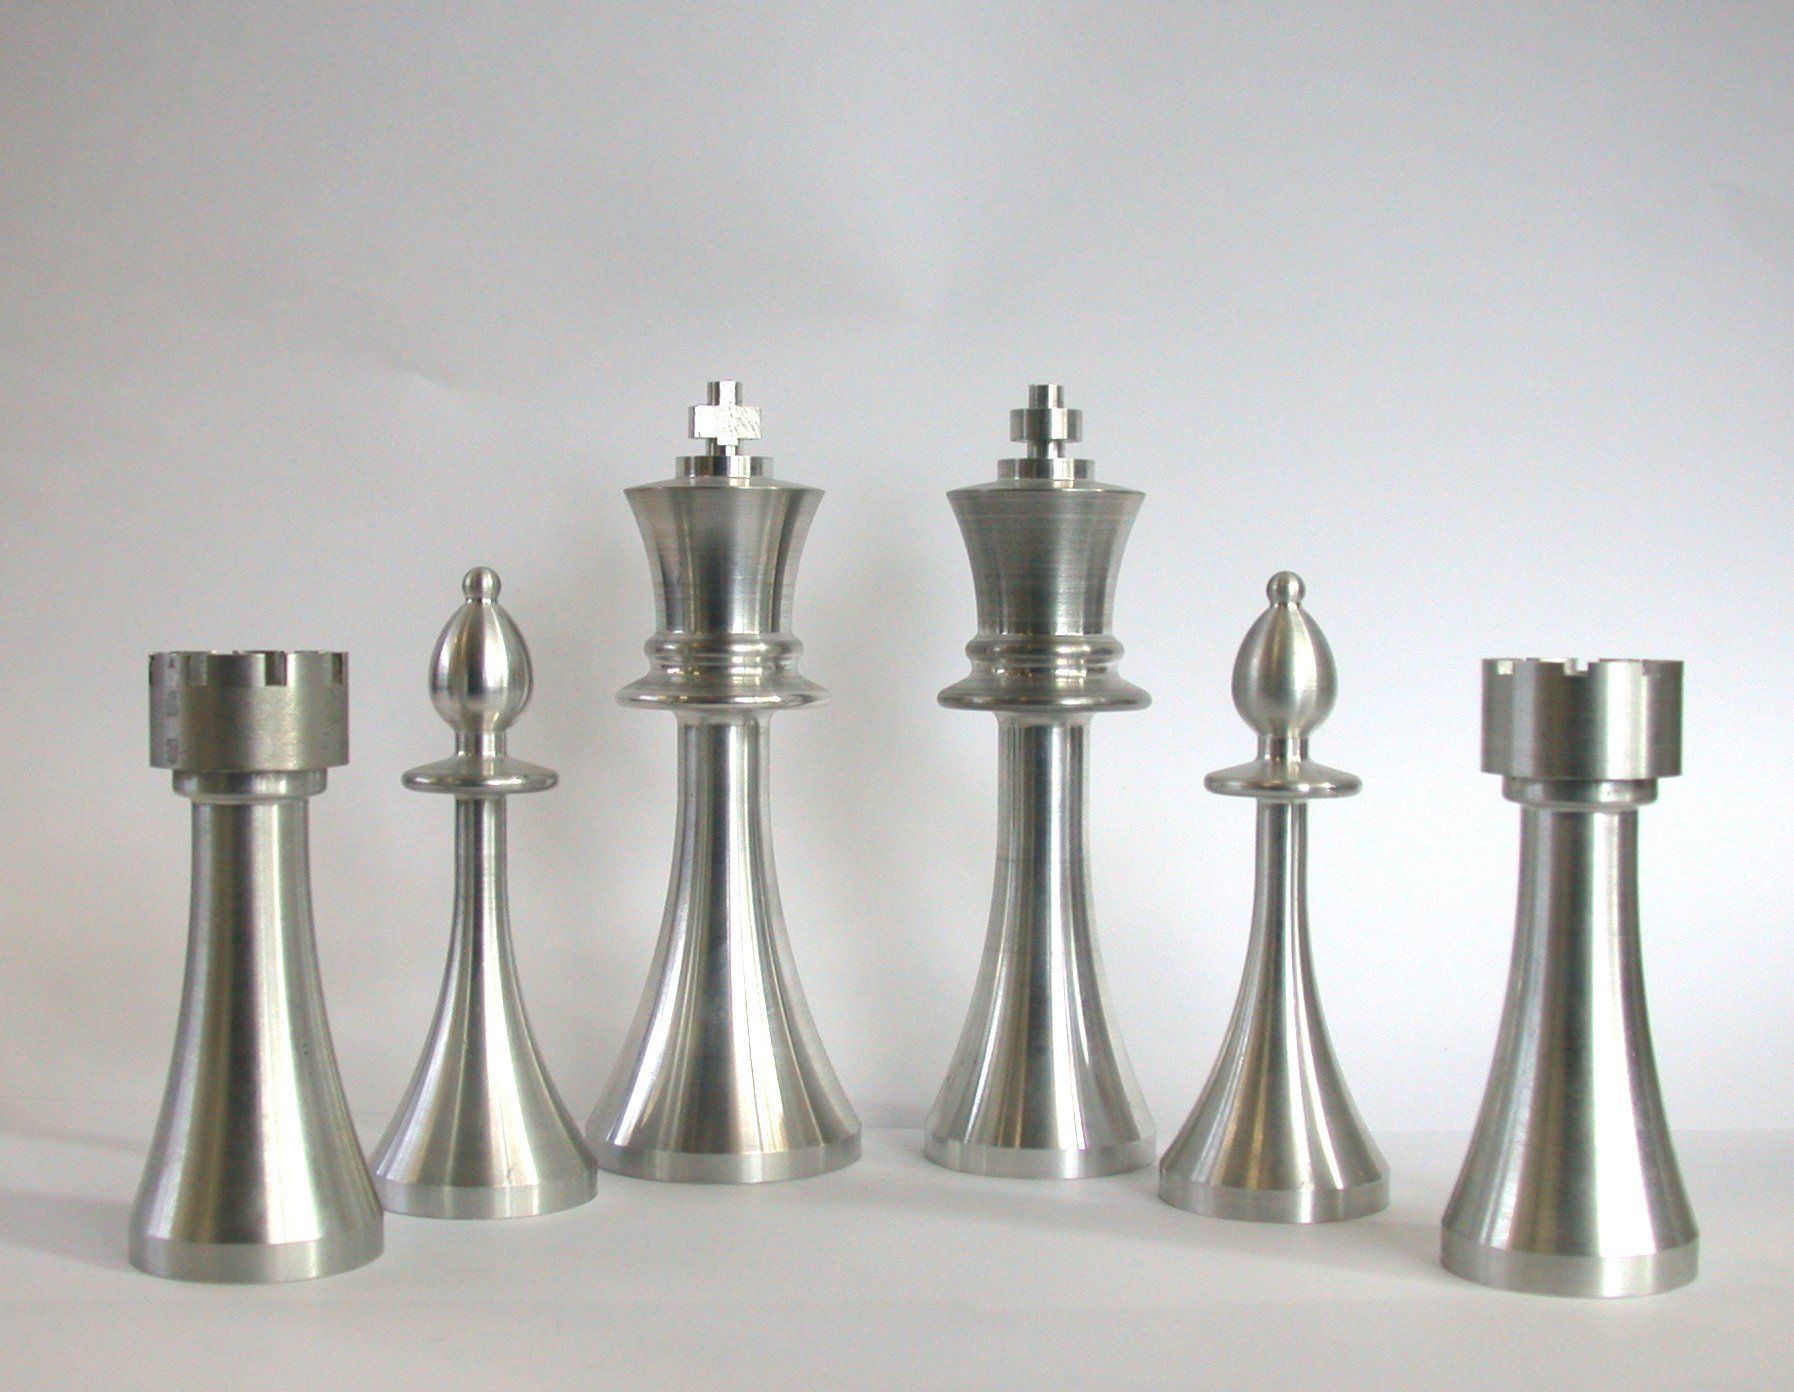 Steel Chess Set 477 Best Chess Pieces Images On Pinterest  Chess Sets Chess